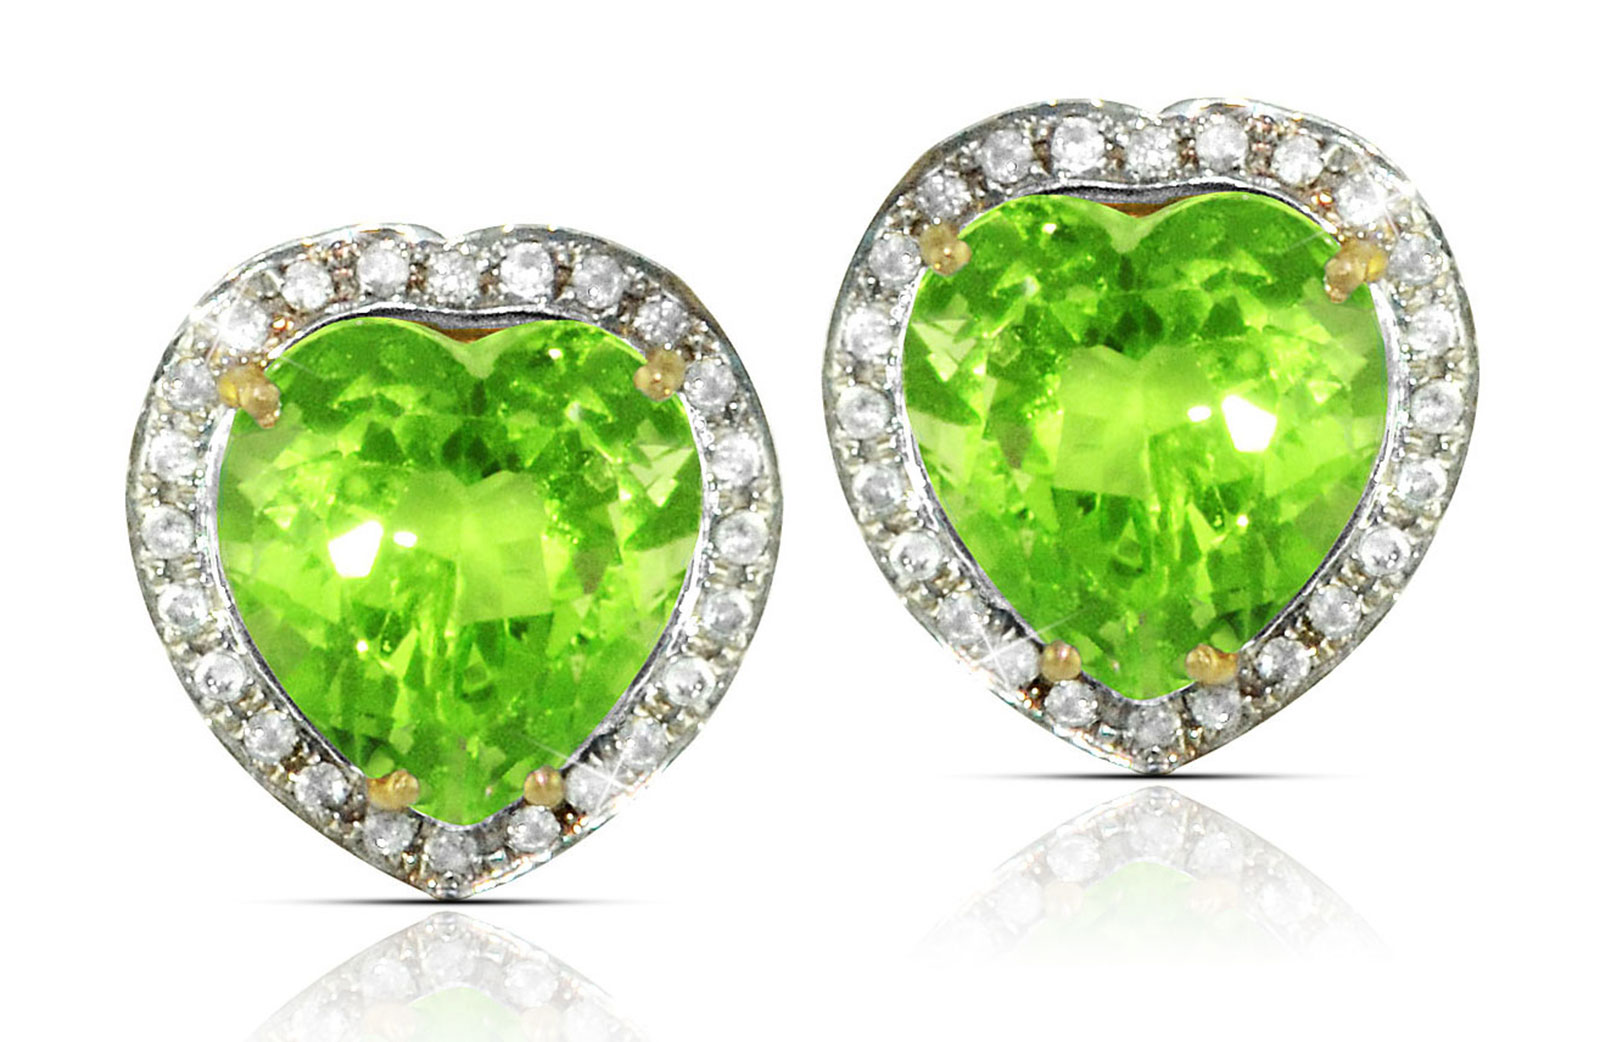 Vera Perla  18k  Gold 10mm Genuine Heart  Cut Peridot 0.28Ct Genuine Diamonds earrings